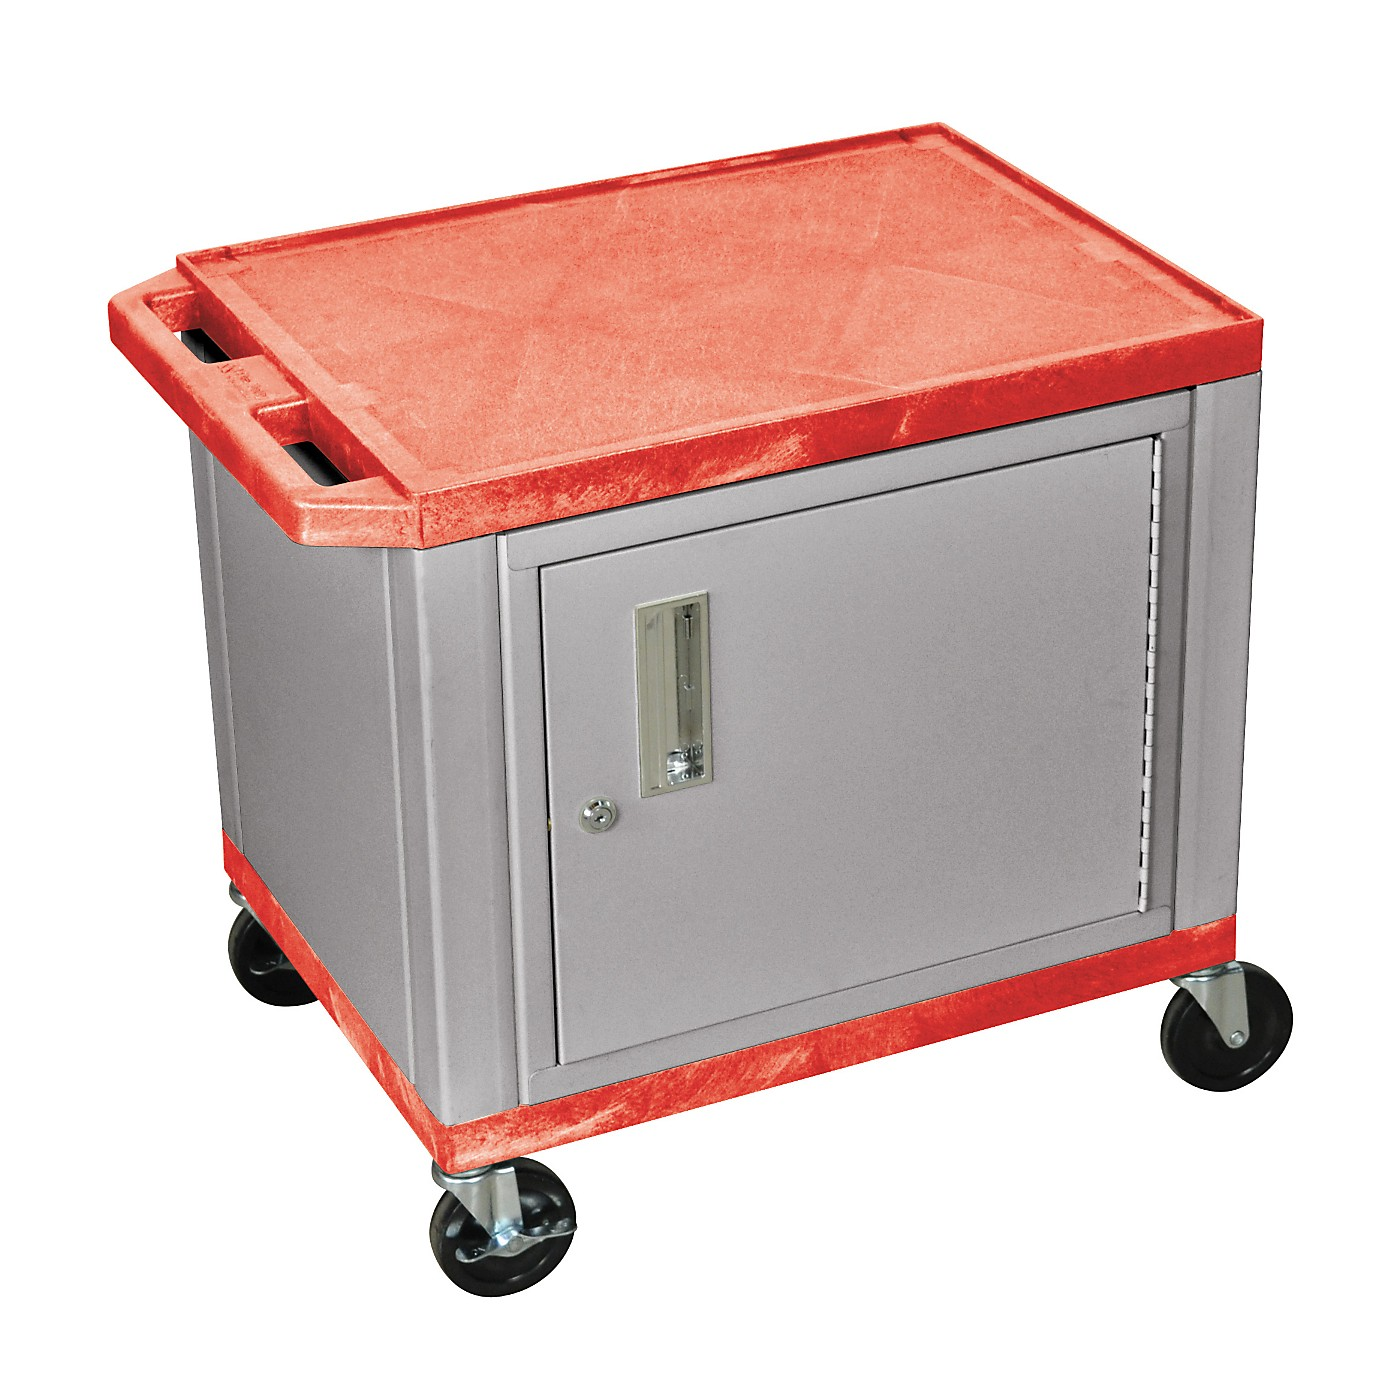 H. Wilson Adjustable-Height Tuffy Cart with Lockable Cabinet thumbnail